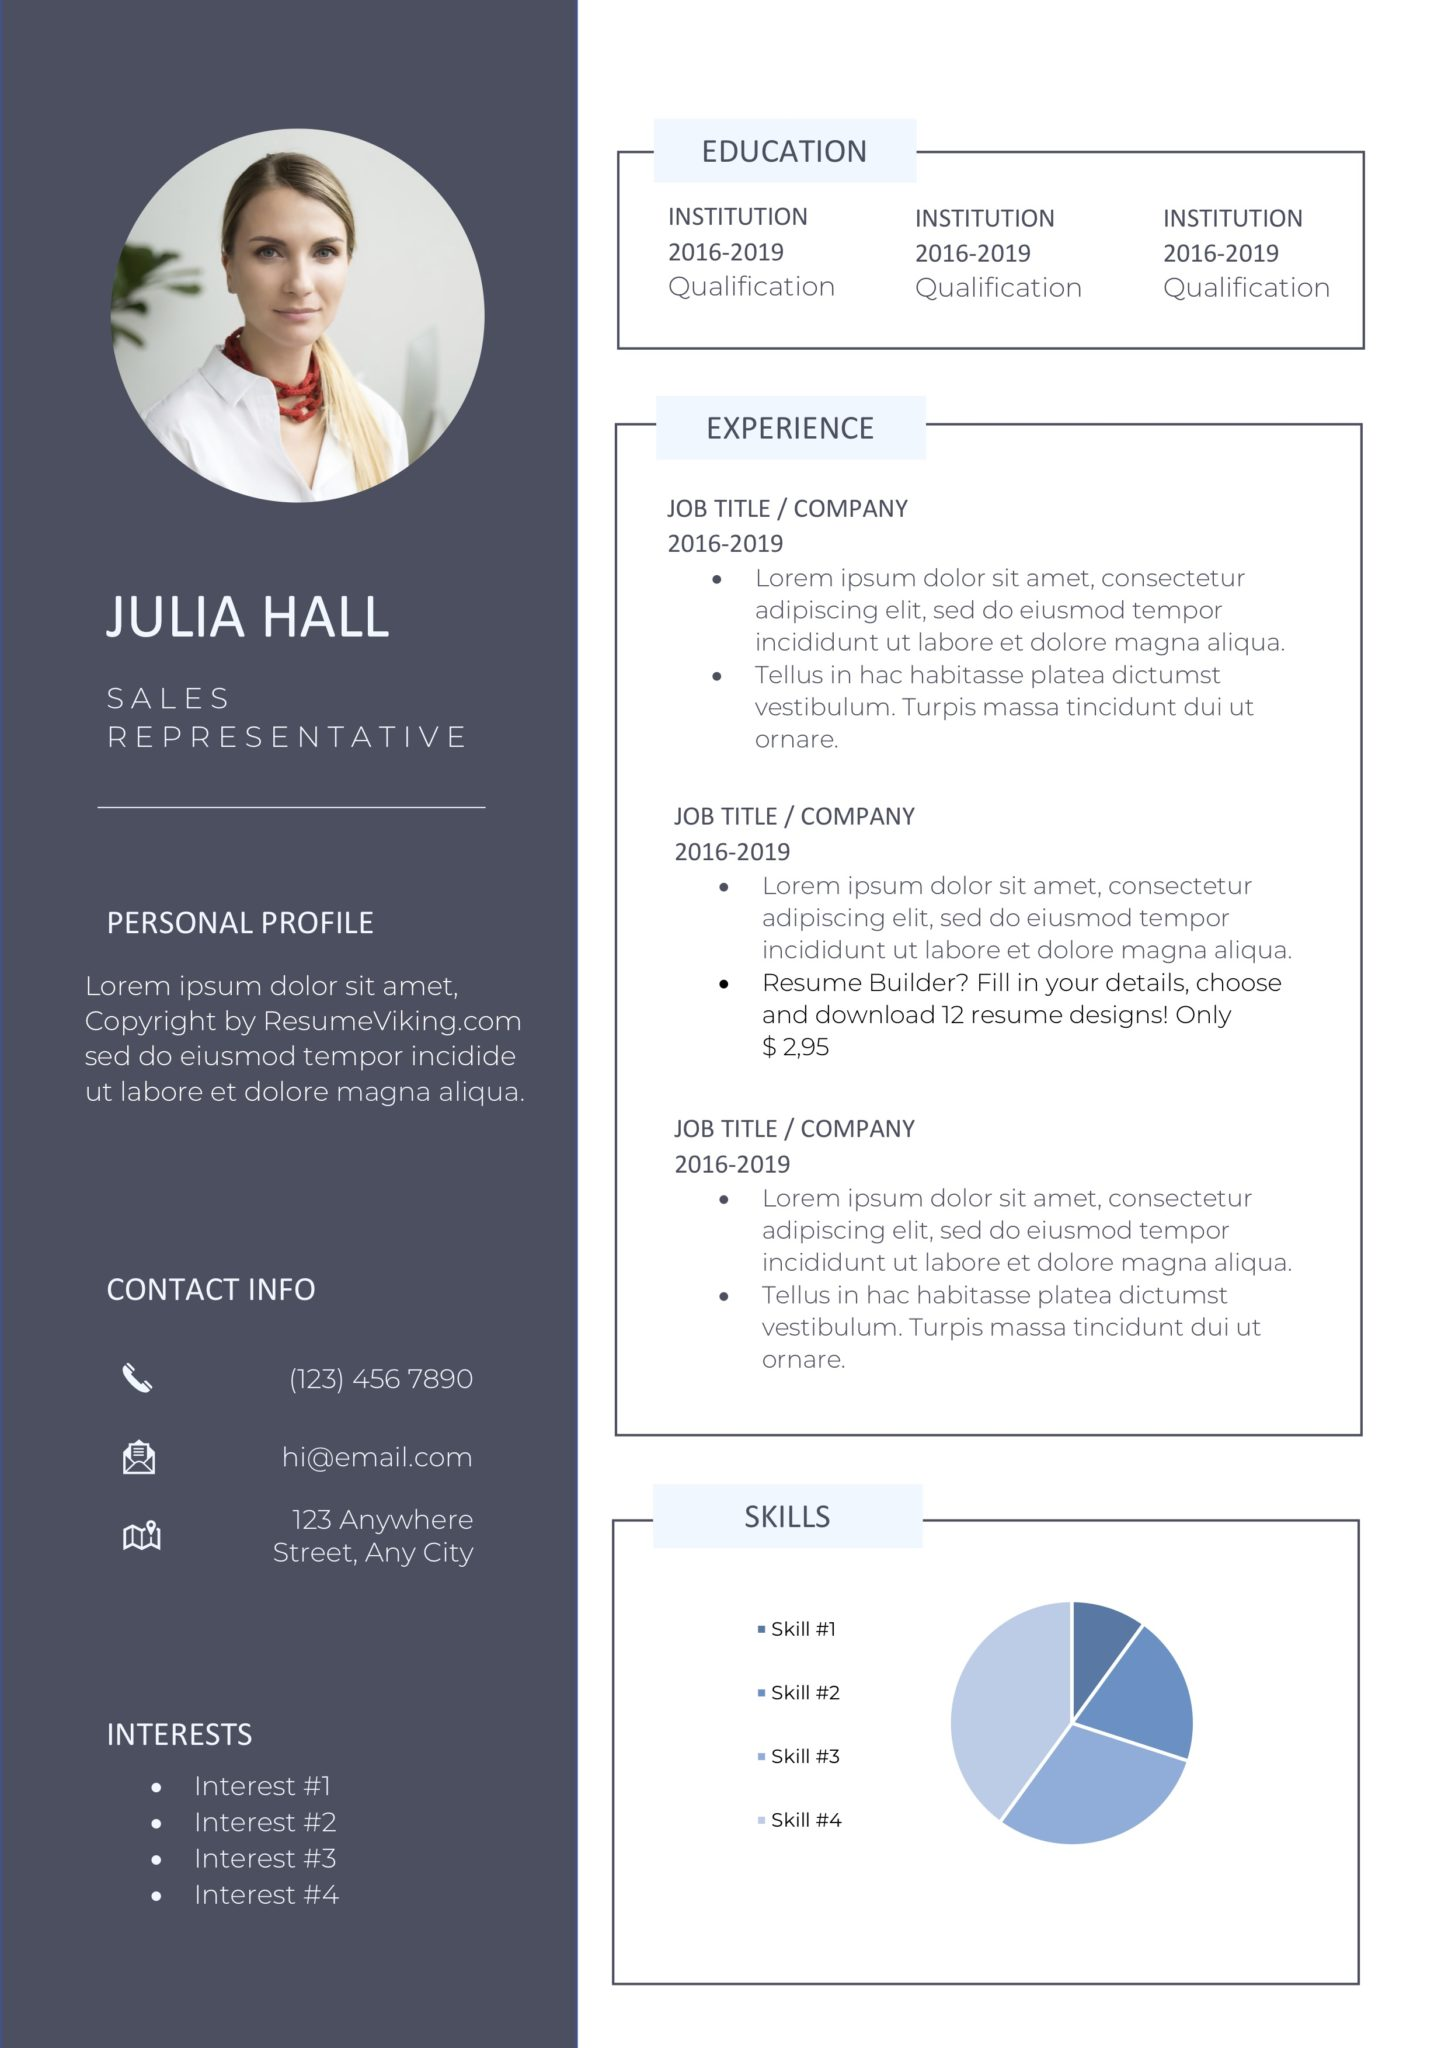 free word resume templates in ms personal template resumeviking scaled delivery driver Resume Personal Resume Template Free